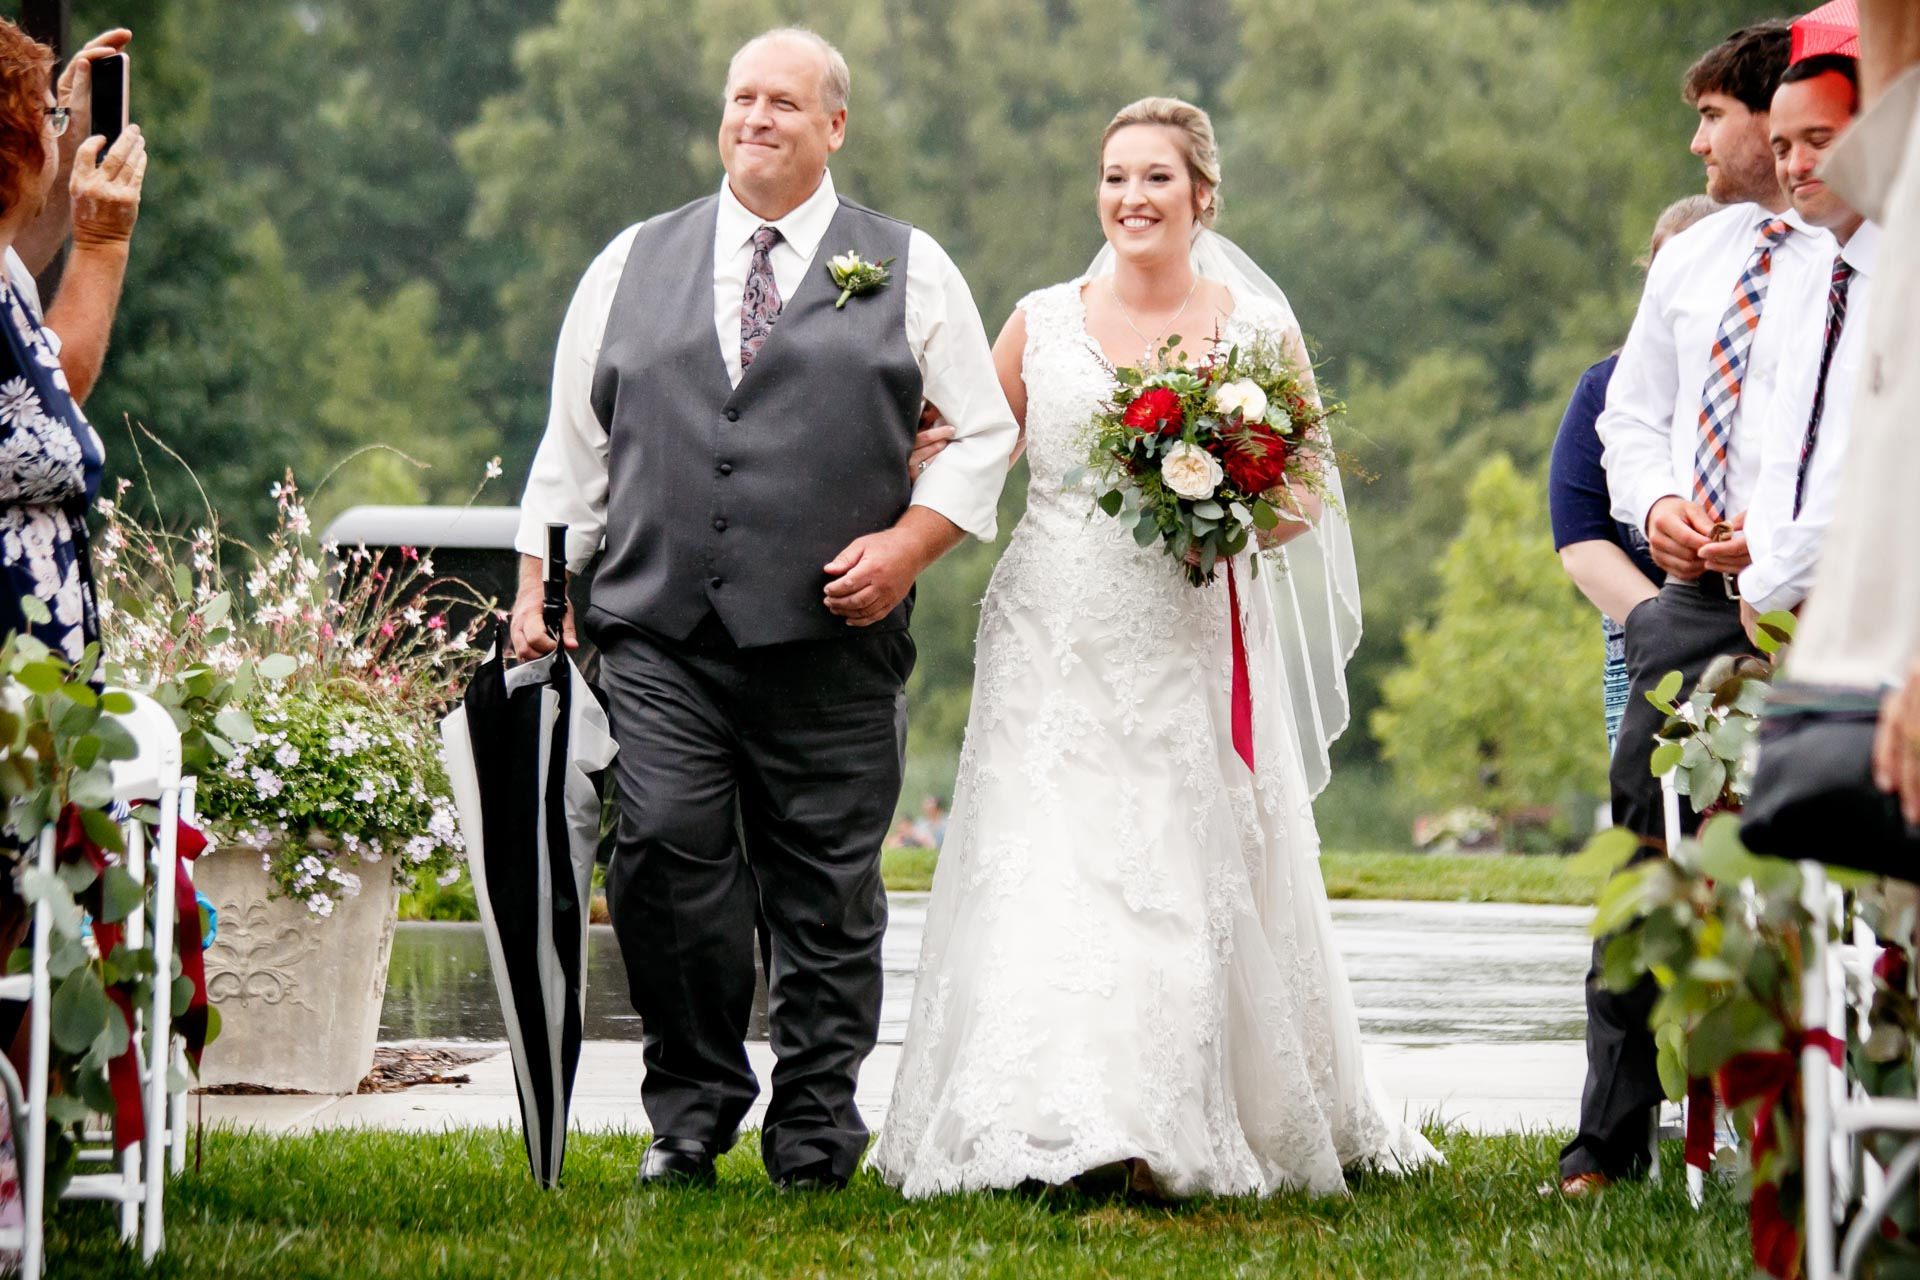 green-bay-botanical-gardens-wedding-adam-shea-photography-green-bay-appleton-neenah-photographer-9.jpg